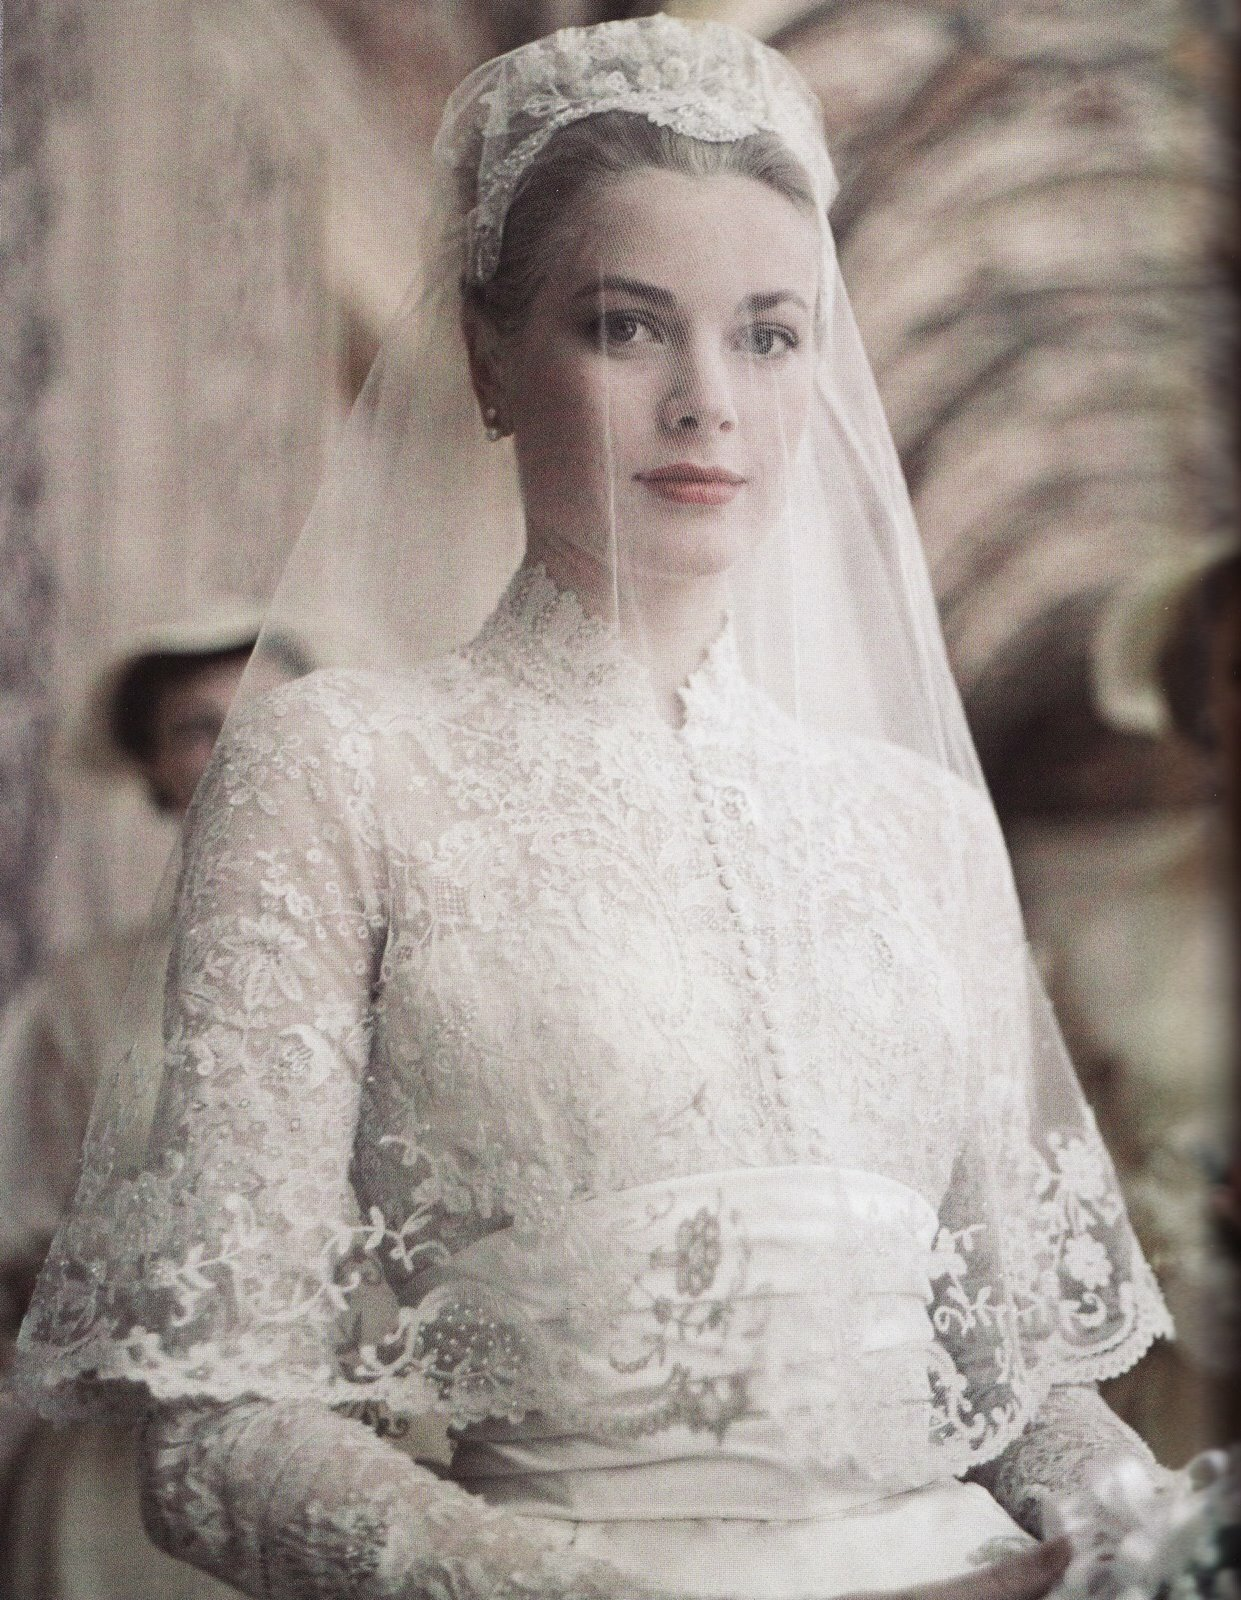 vintage wedding dresses patterns vintage wedding dress patterns Vintage wedding dresses patterns